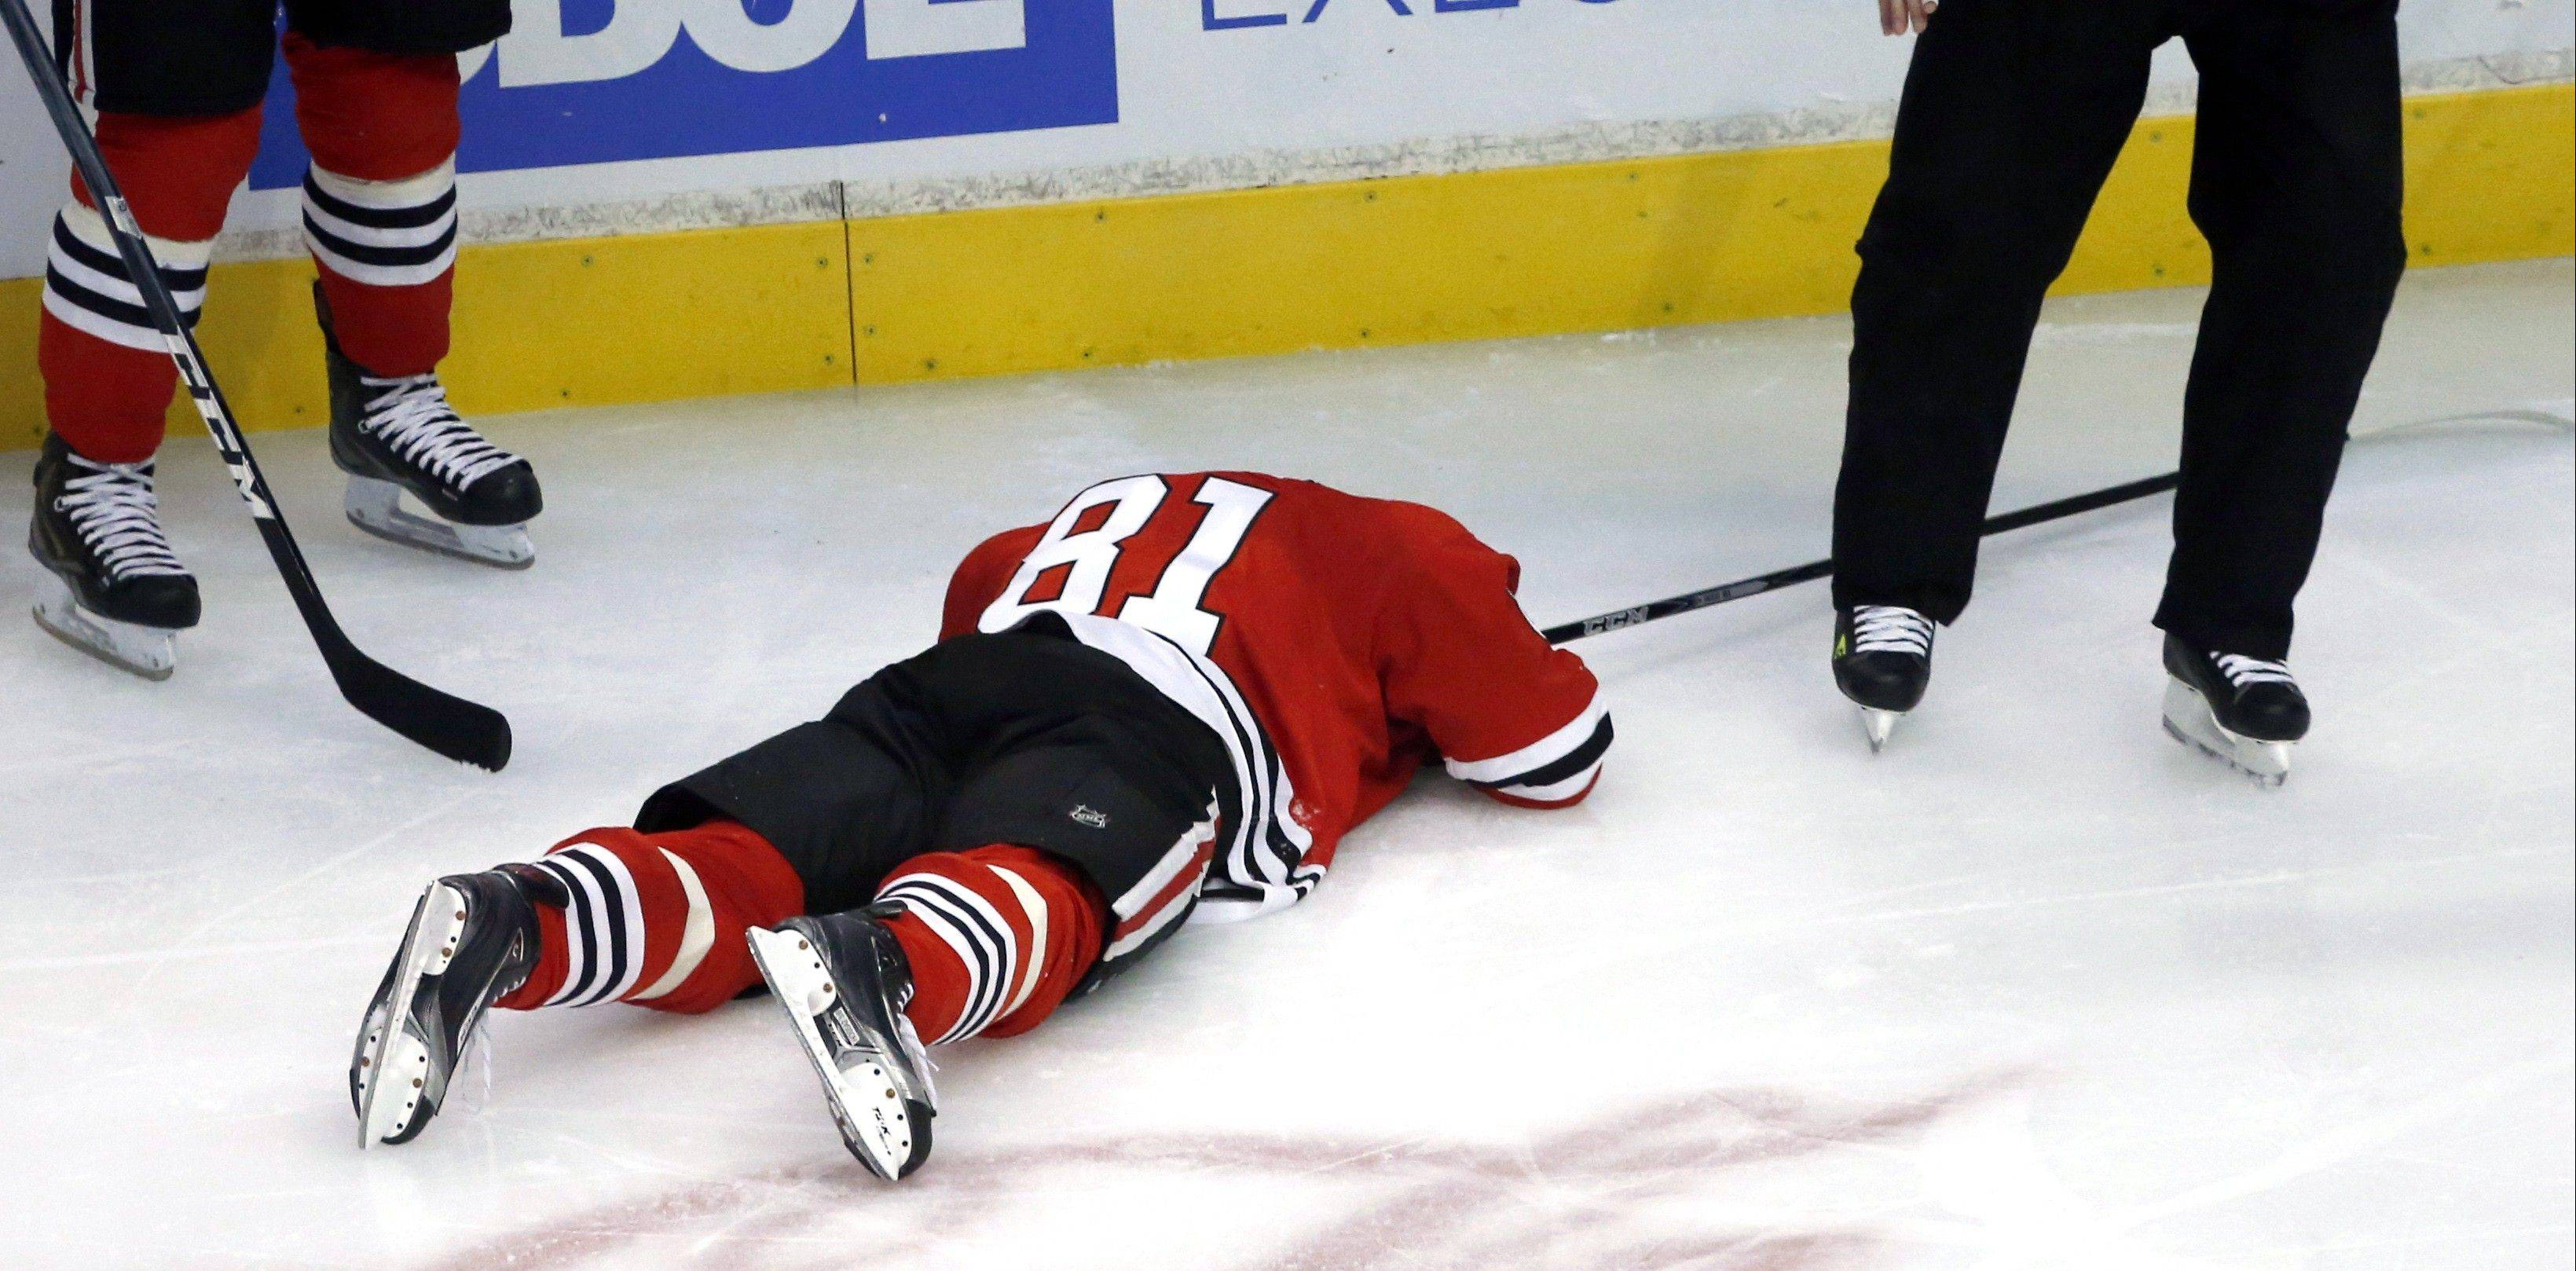 The Blackhawks' Marian Hossa lies on the ice after being hit in the back of the head by Jannik Hansen of the Canucks on Tuesday night at the United Center.